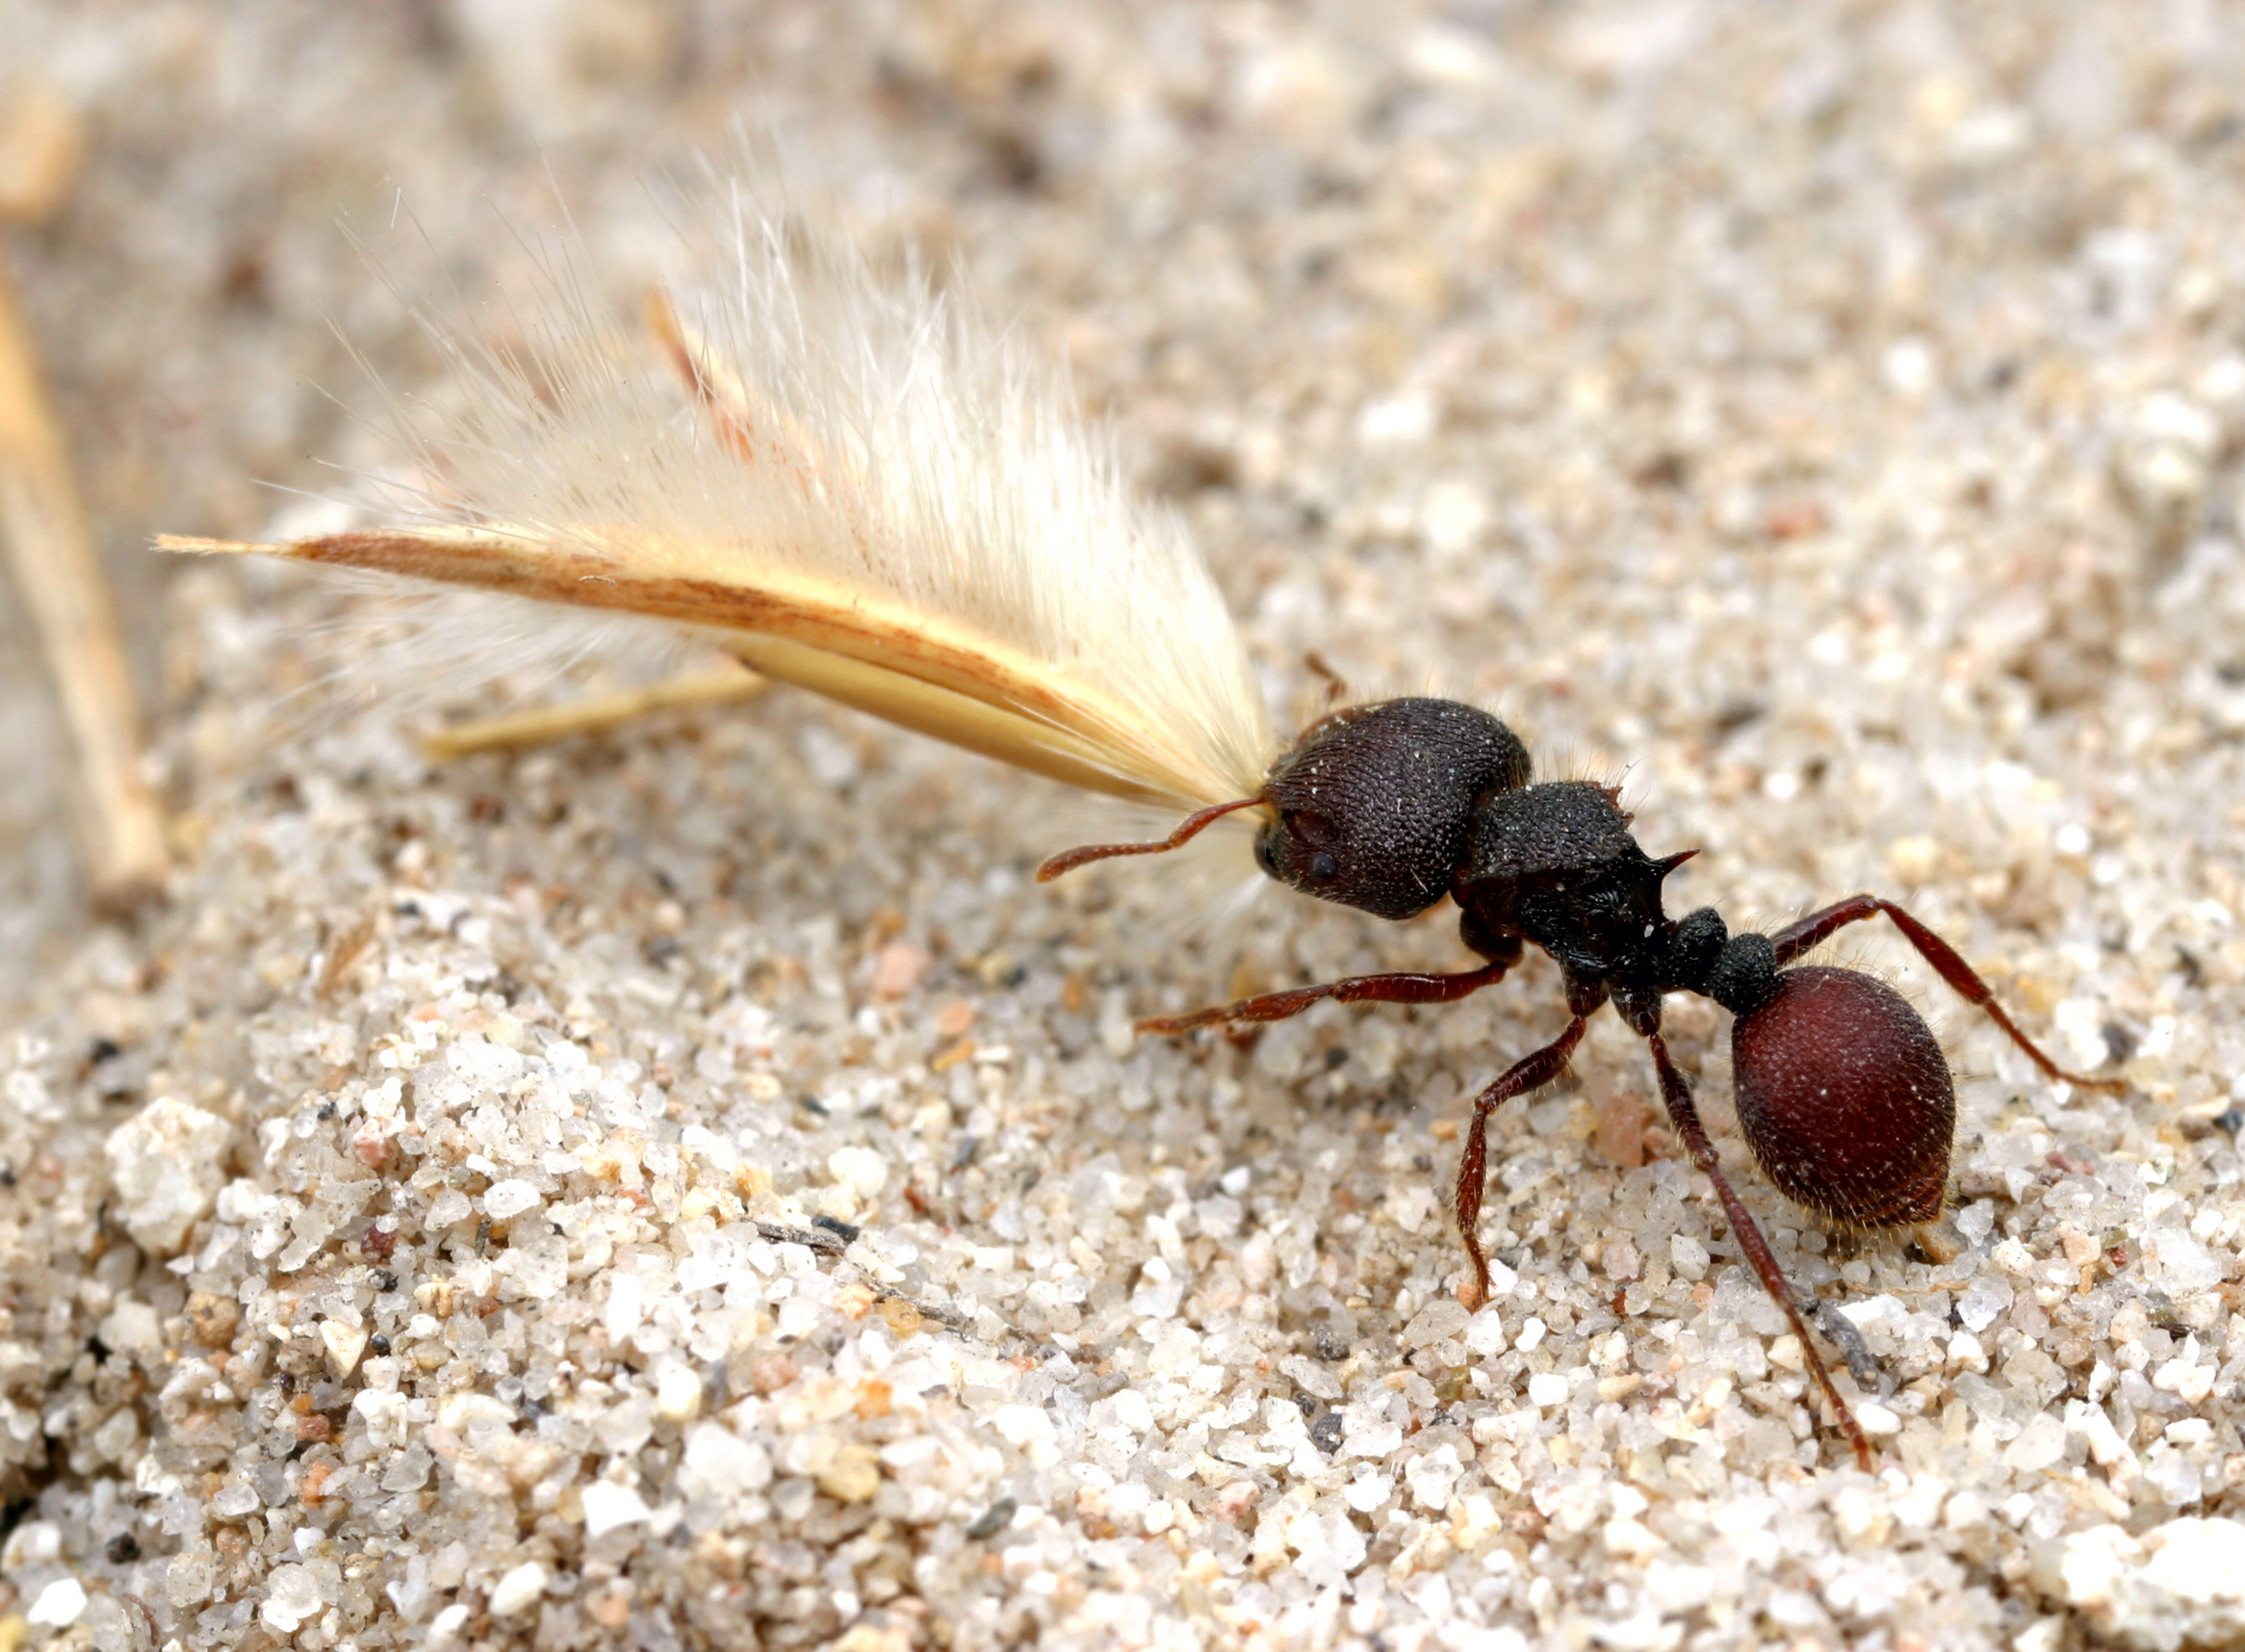 Ant carrying a seed